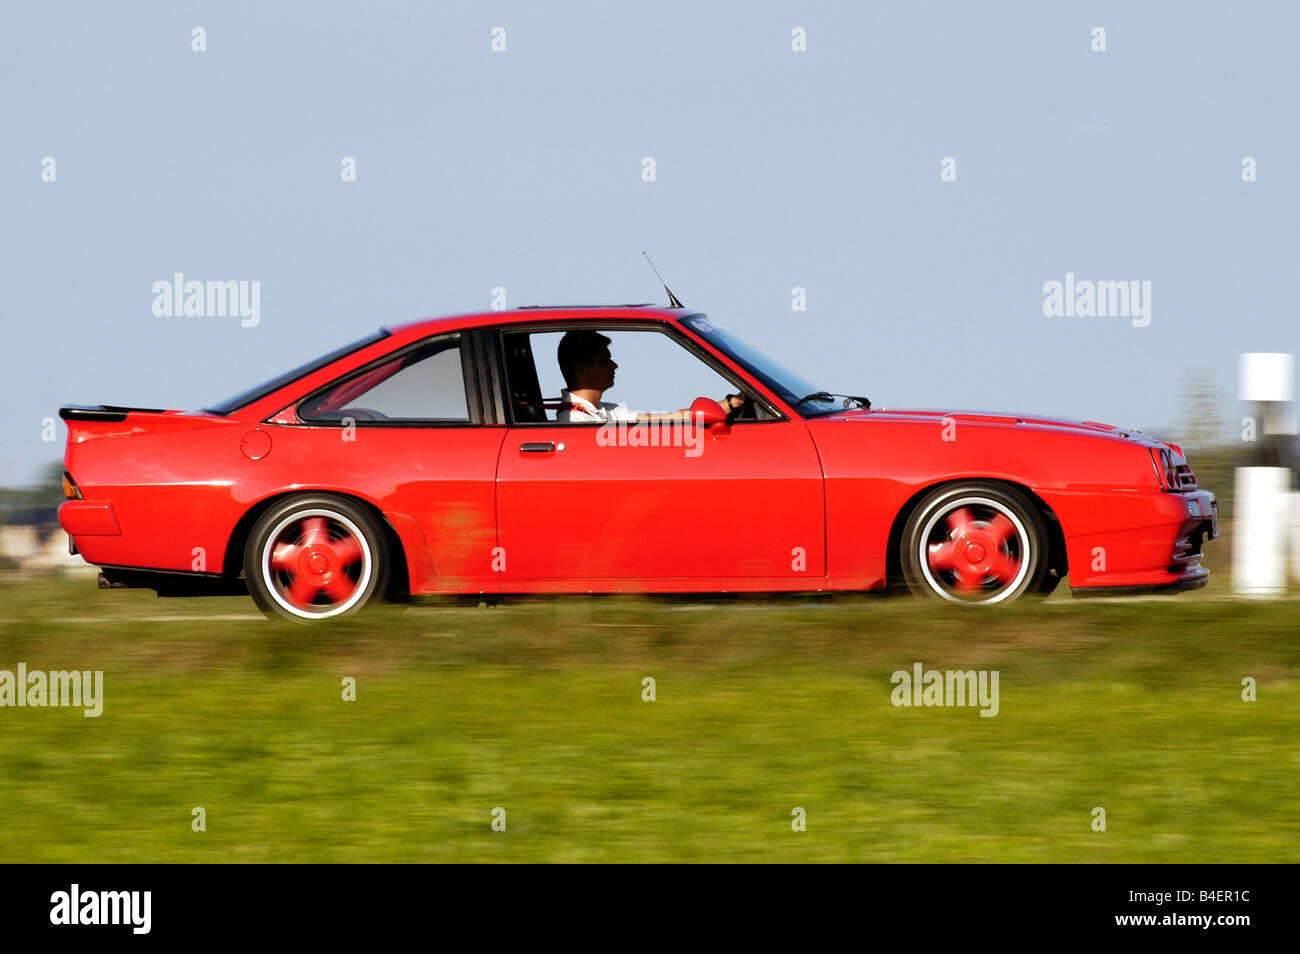 car opel manta b model year 1983 red coup coupe old car stock photo royalty free image. Black Bedroom Furniture Sets. Home Design Ideas